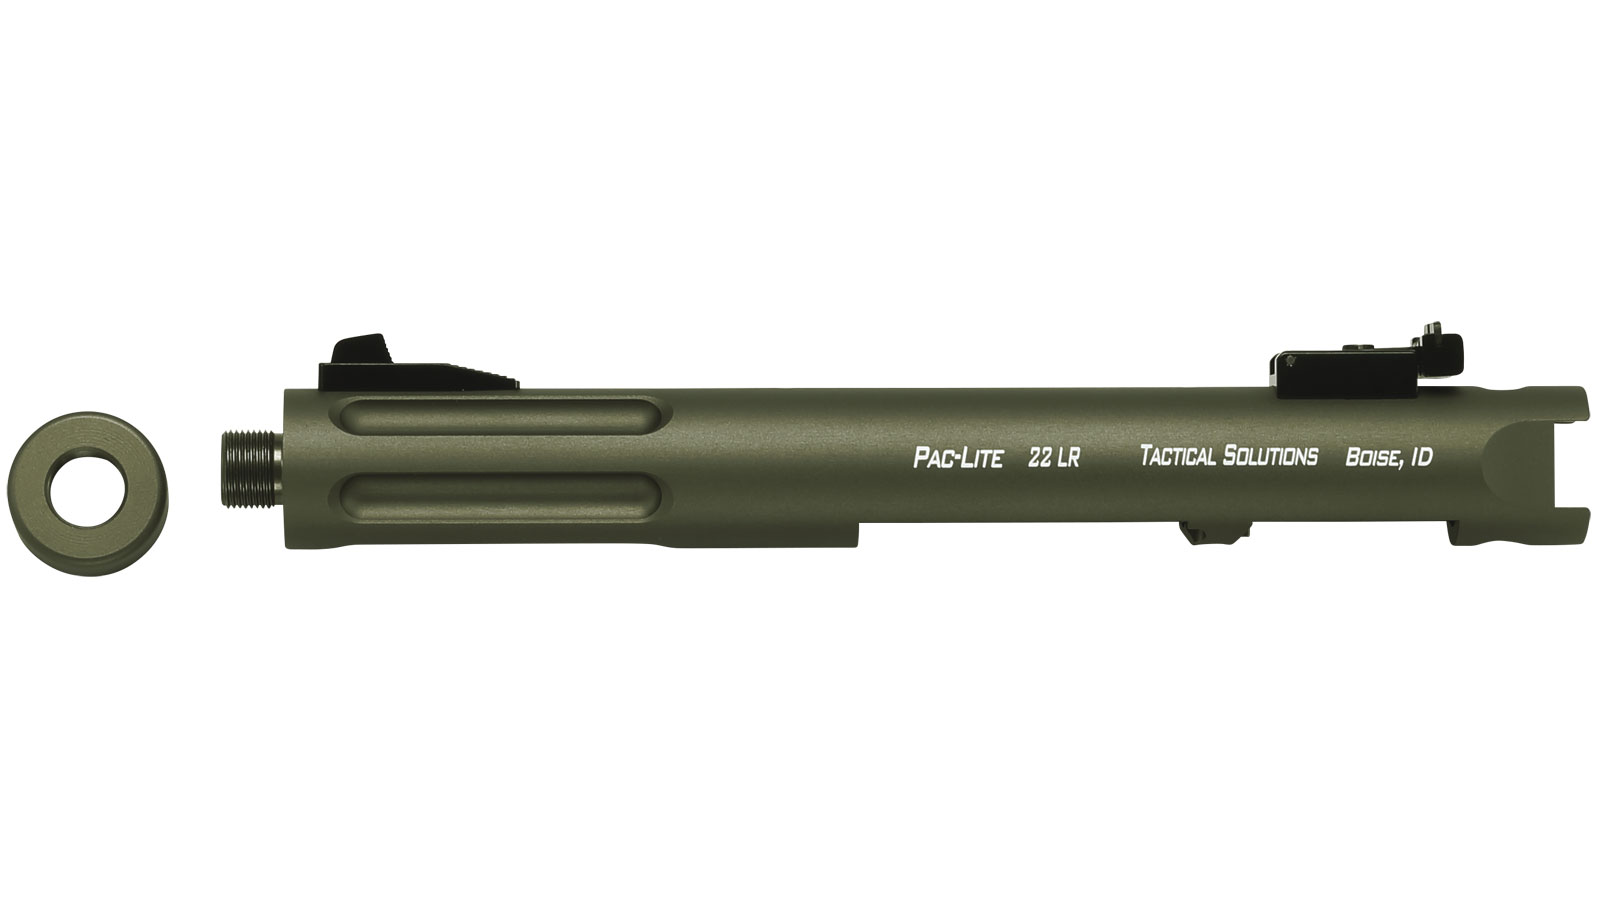 Tactical Solutions Pac-Lite Olive Drab Green 4.5-inch Fluted Threaded Barrel